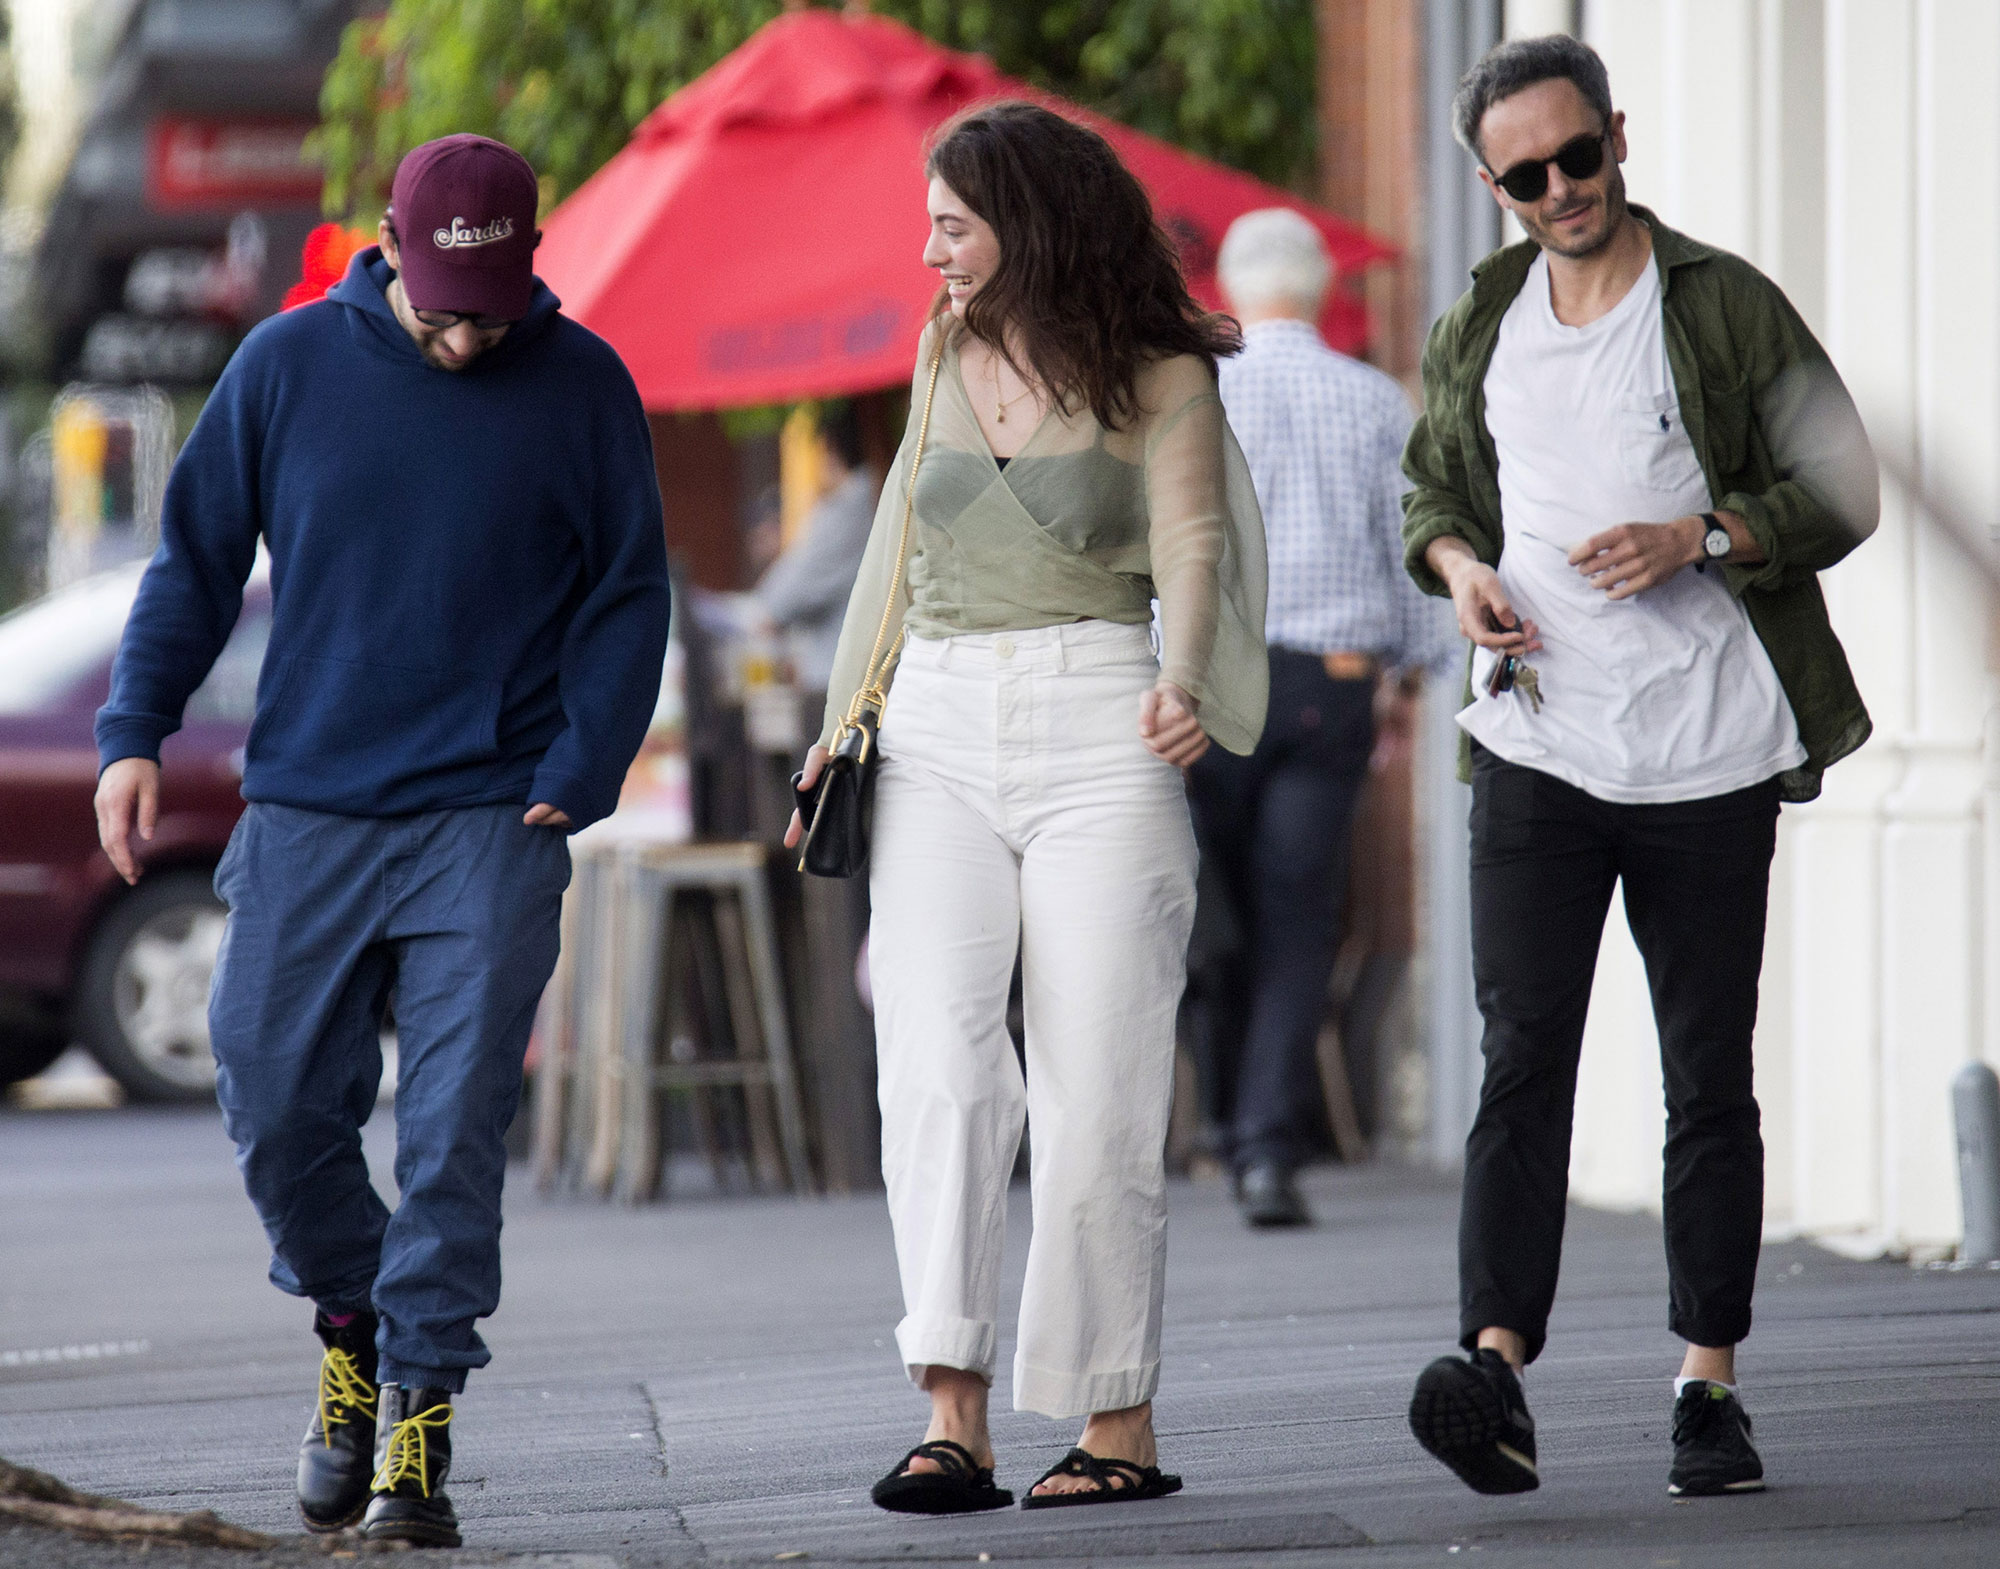 ** NO WEB UNTIL FEBRUARY 22ND 10AM PST 2018 ** PREMIUM EXCLUSIVE **  Lorde and Jack Antonoff looking very friendly in New Zealand